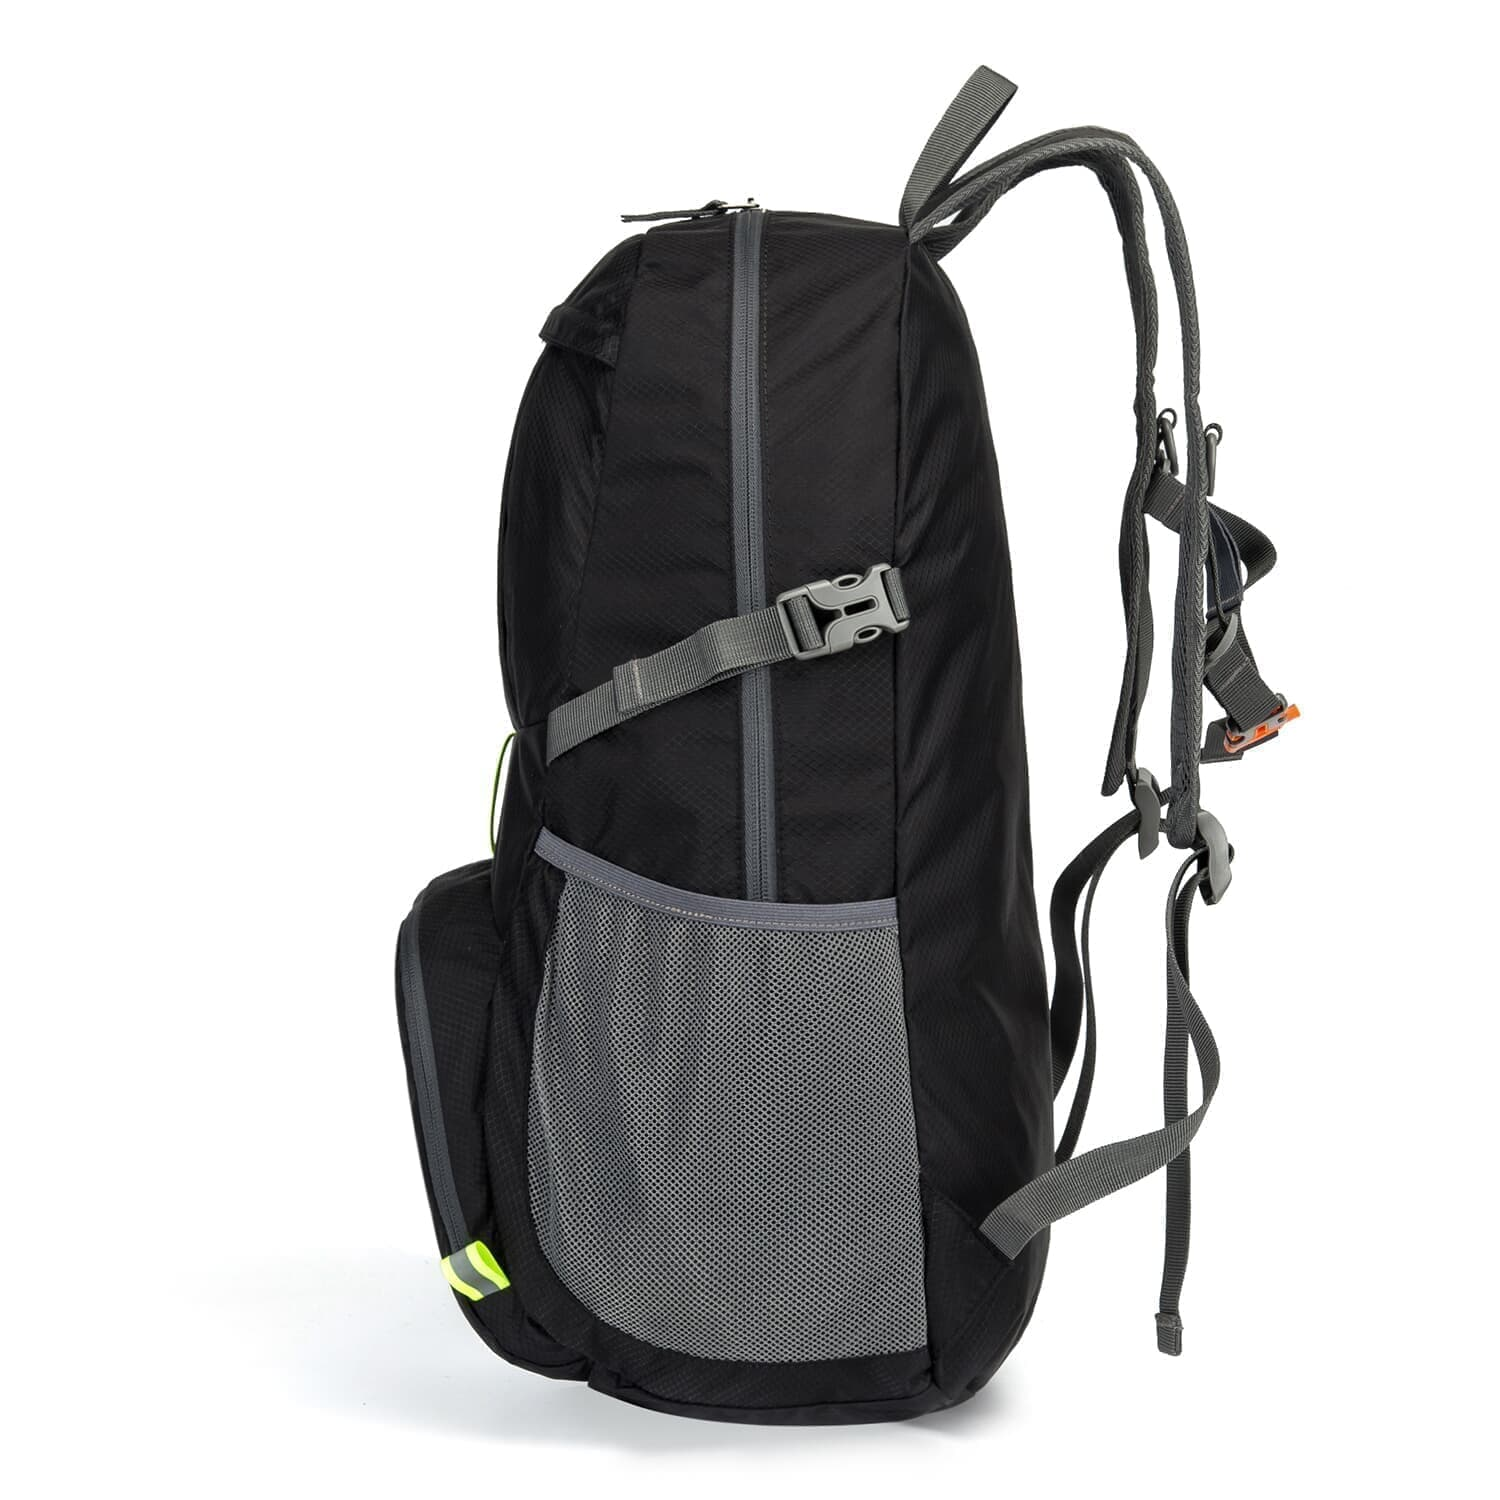 Homfu Foldable Backpack For Travel Packable Daypack For Hiking Camping Waterproof Lightweight Bag Black (Black-35L)